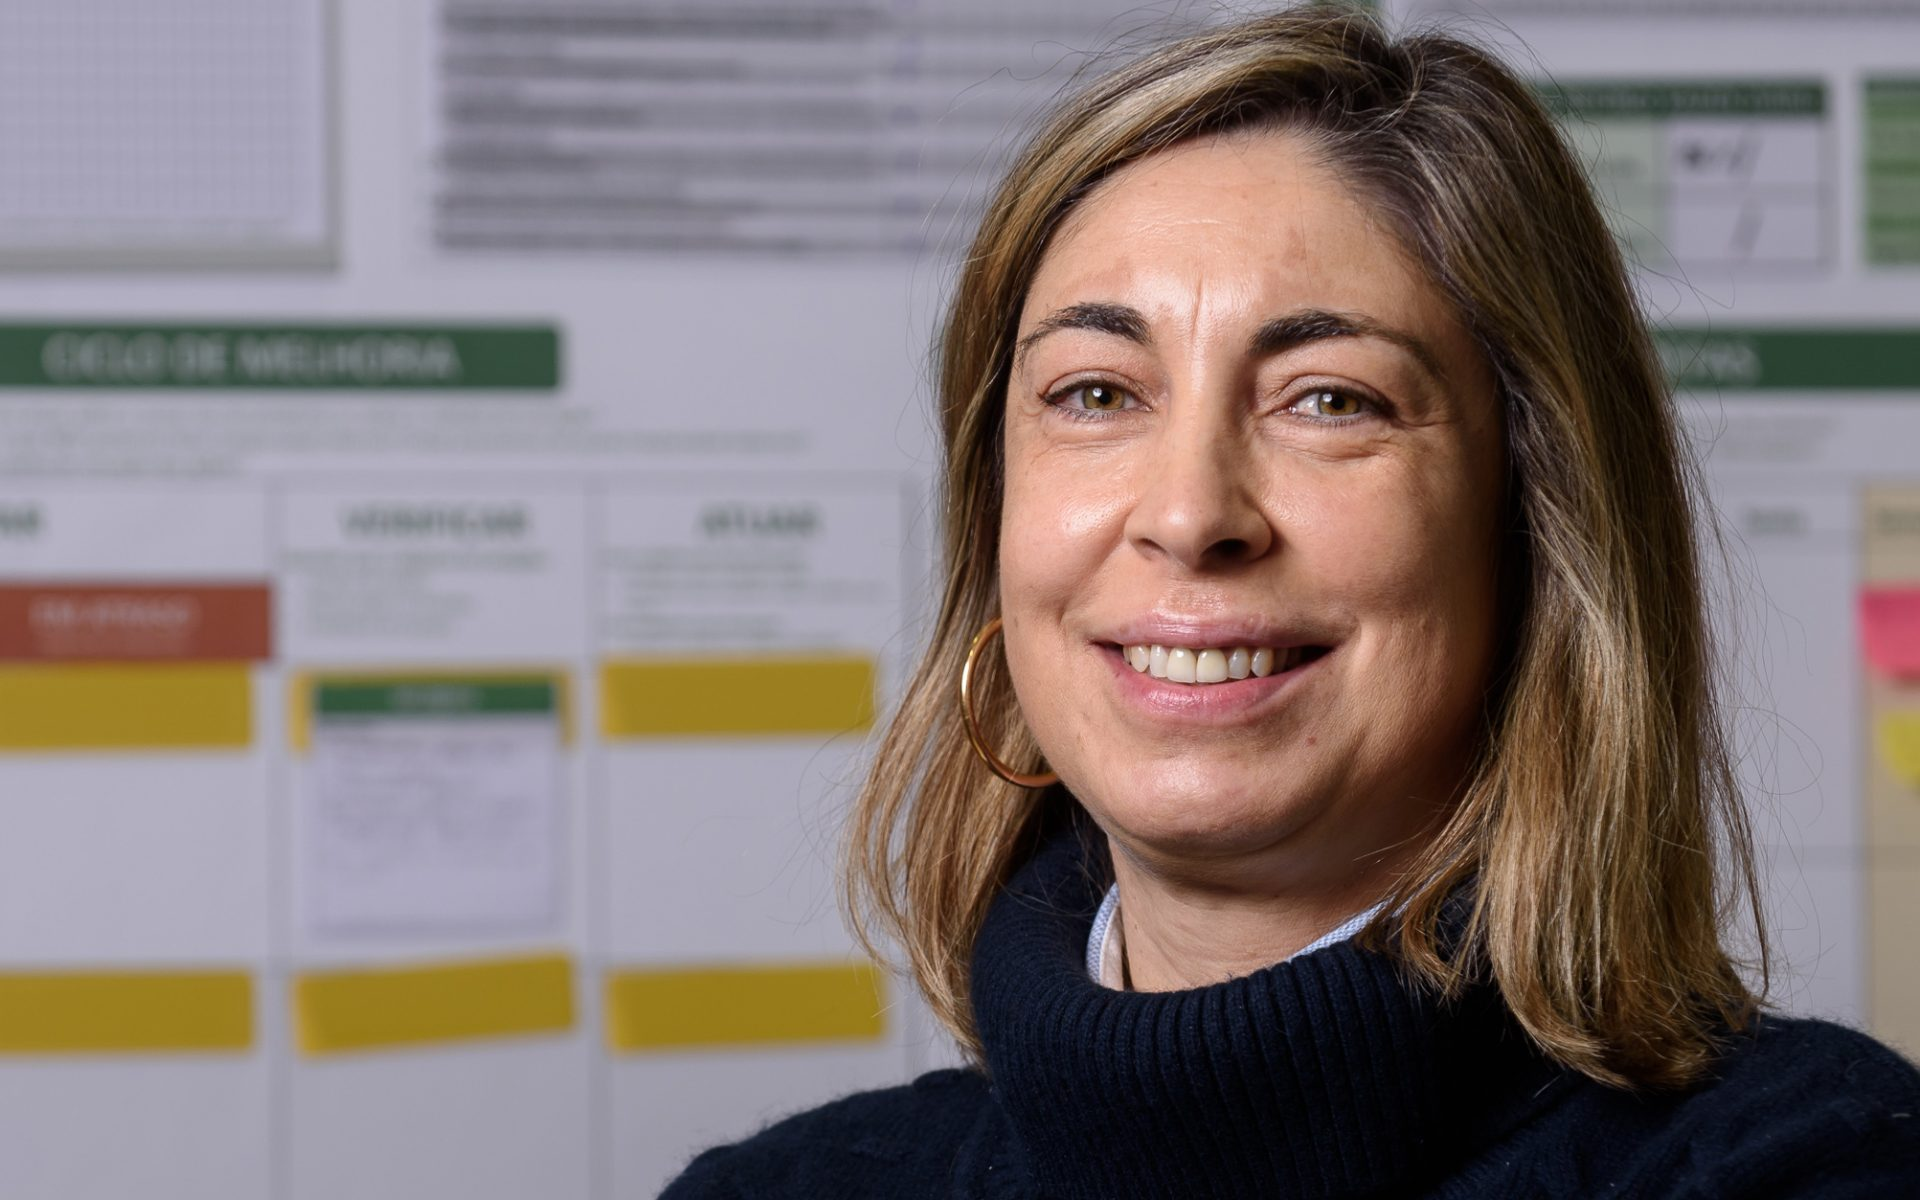 Sofia Jorge, manager of Celbi's Technical Control and Management Systems department